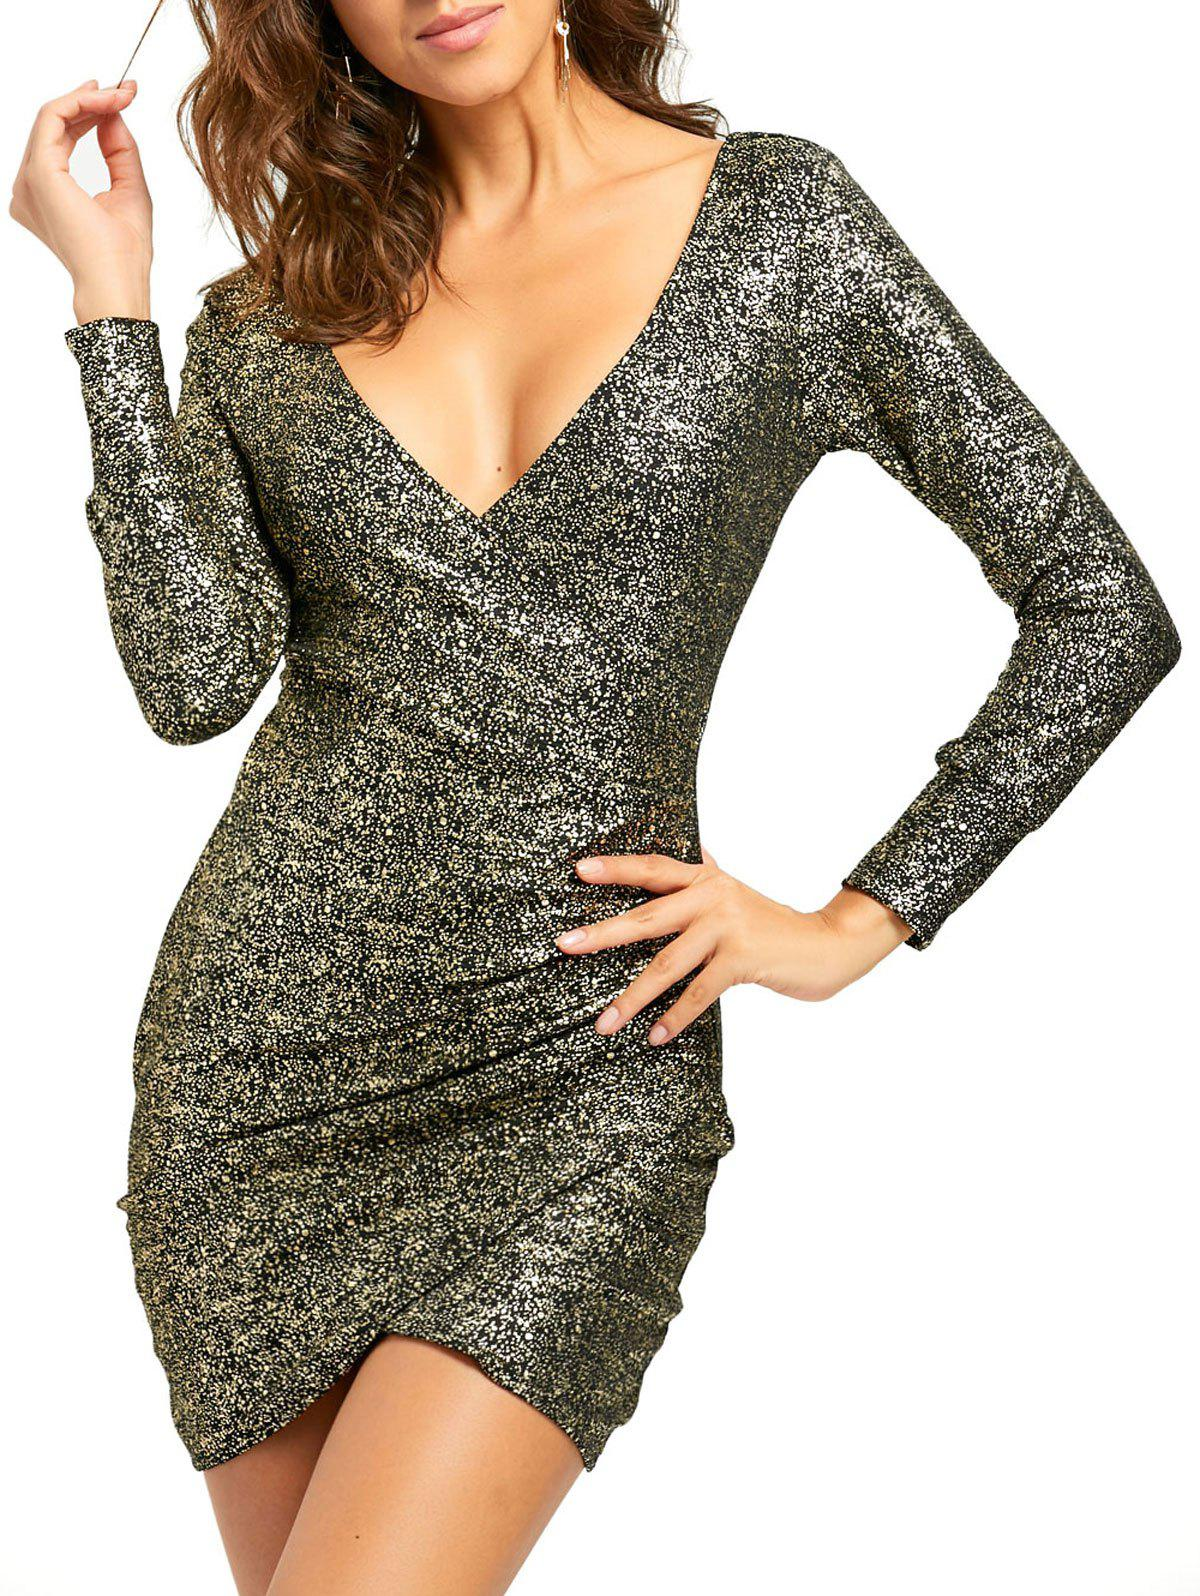 Plunging Neckline Ruched Mini Bodycon Dress - GOLDEN M